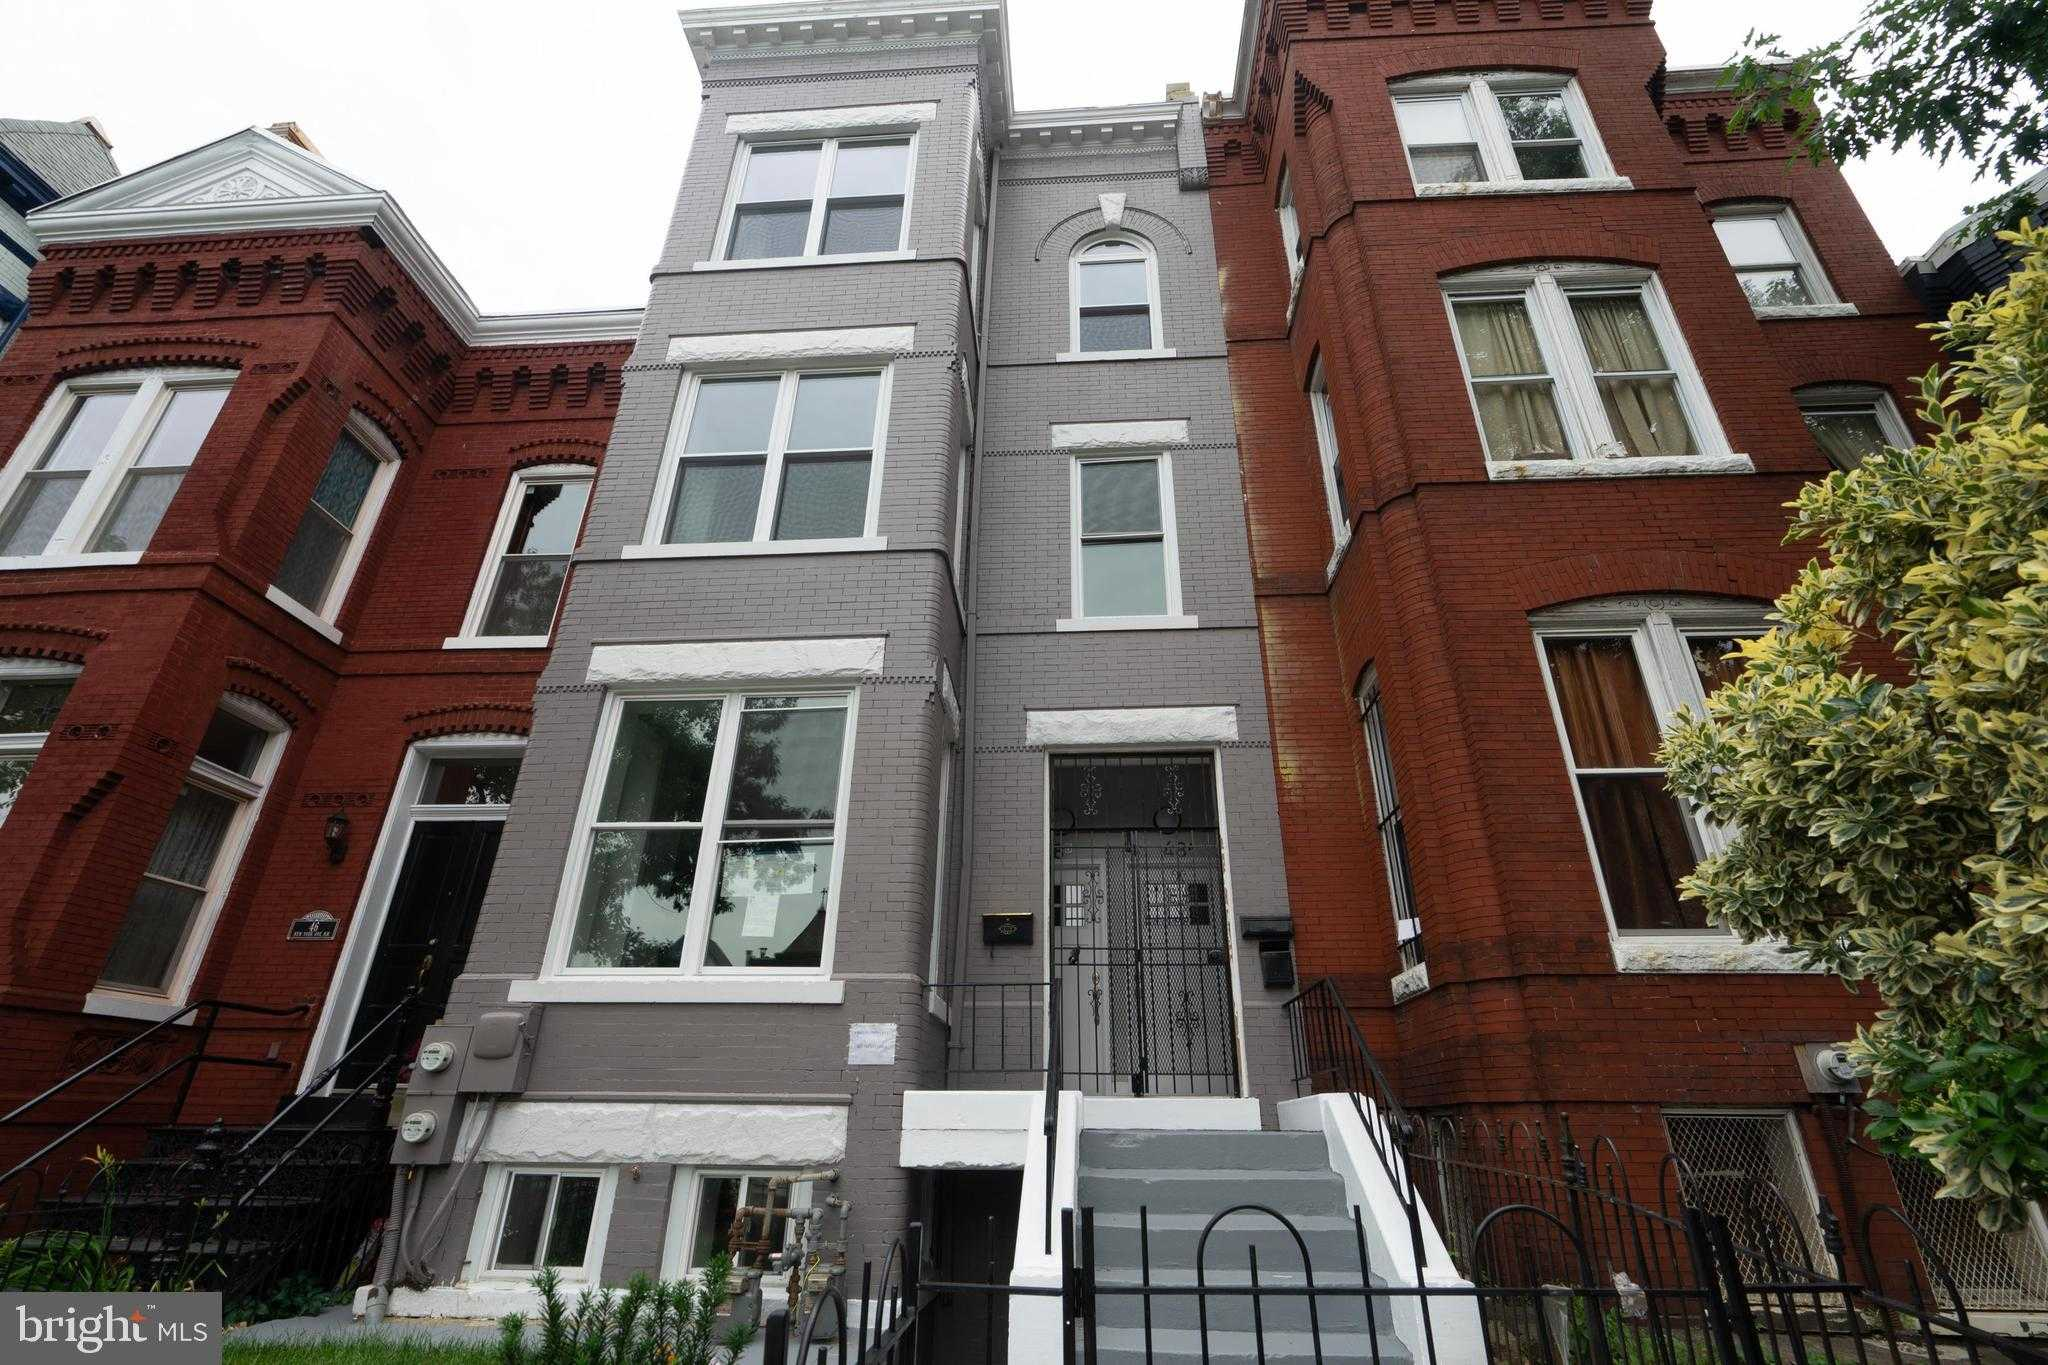 $850,000 - 3Br/3Ba -  for Sale in Old City #2, Washington